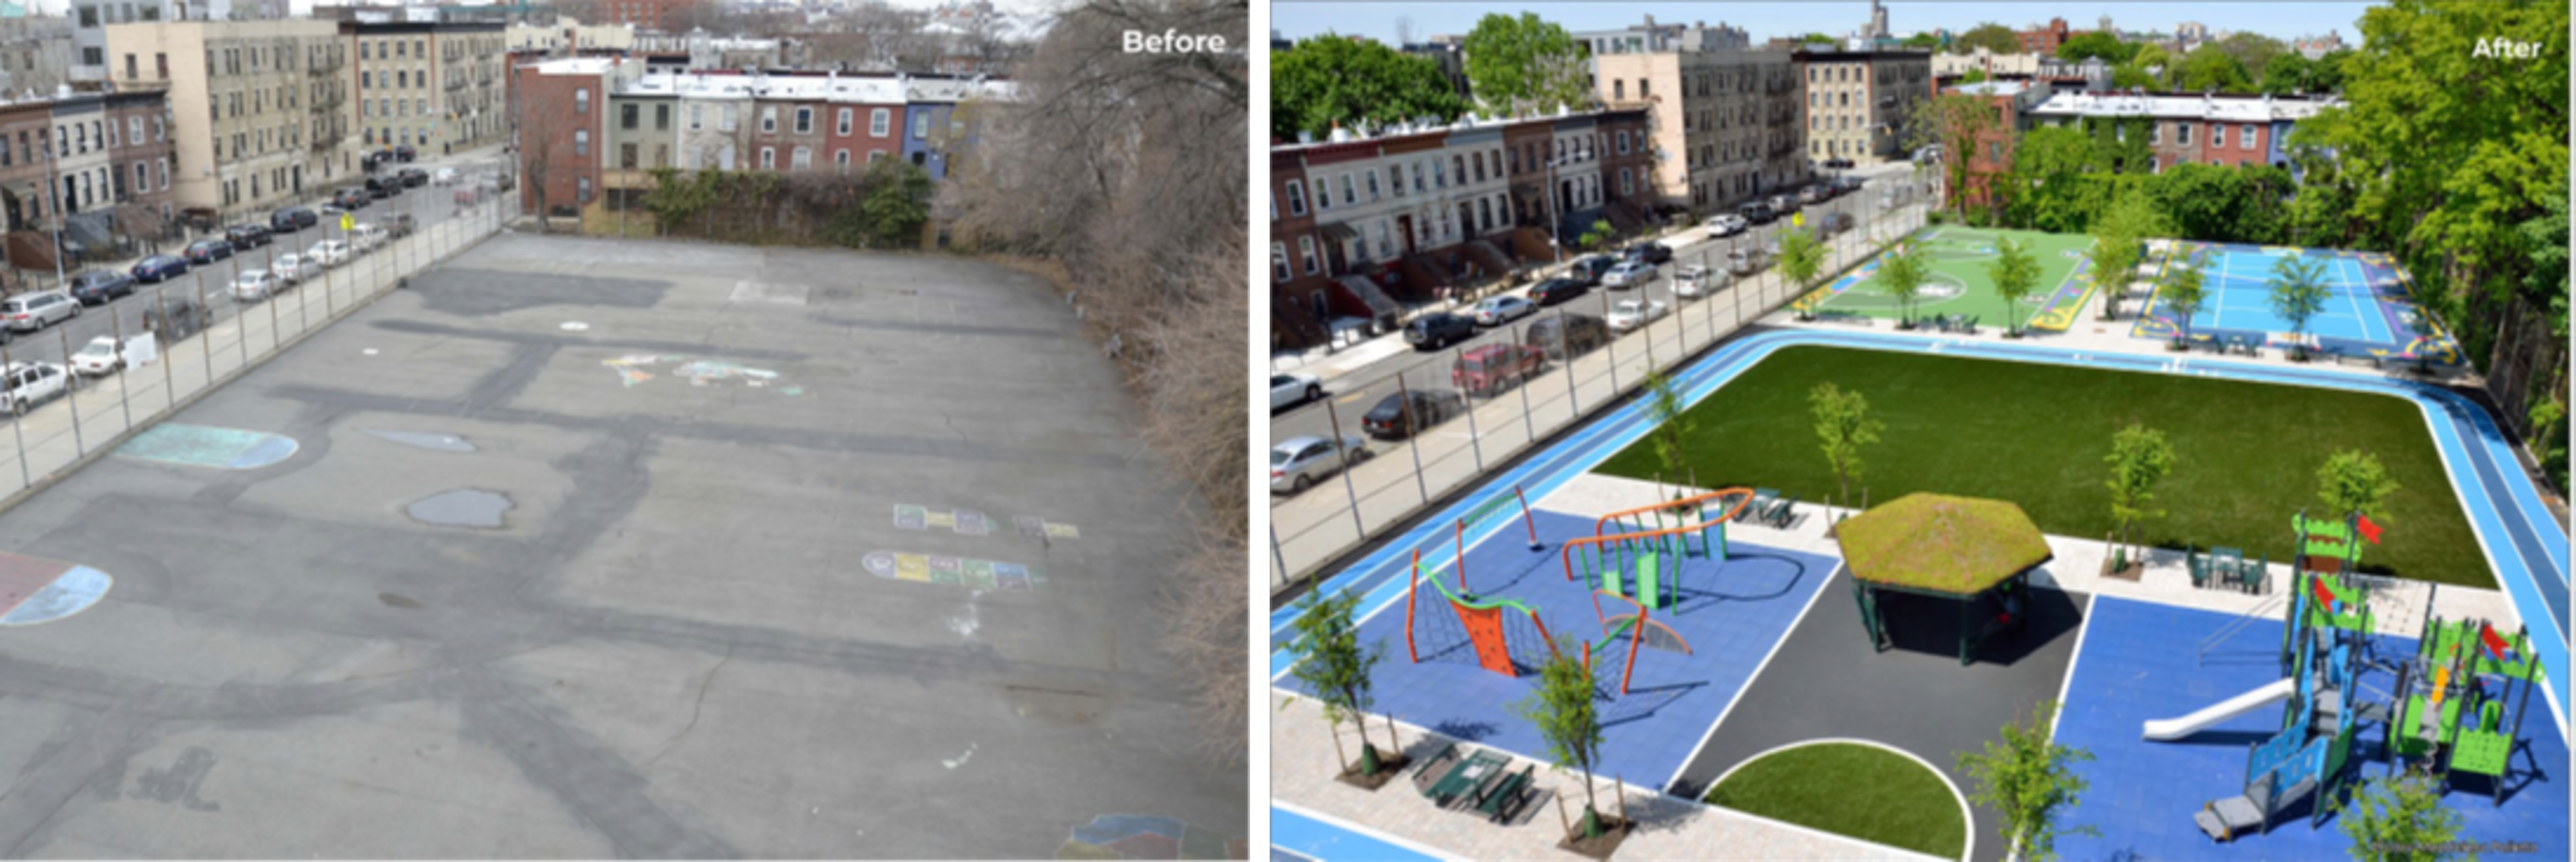 Before and after pictures of Crown Heights schoolyard transformation.